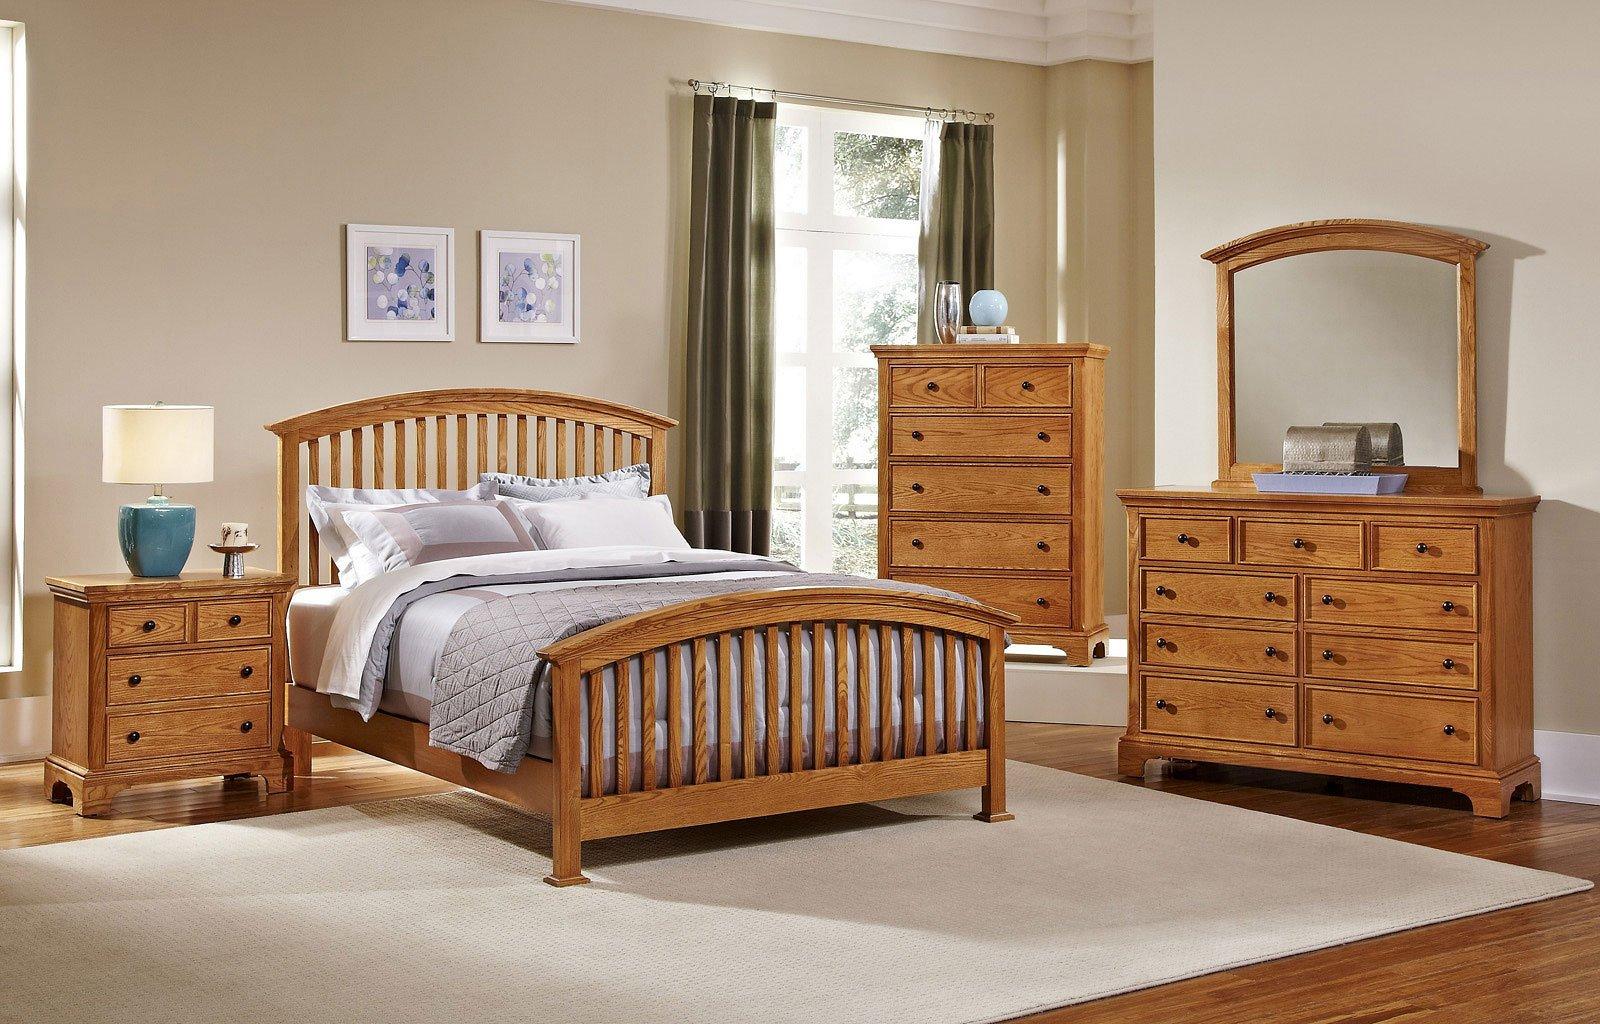 Forsyth Arched Bedroom Set Medium Oak Vaughan Bassett Furniture Cart